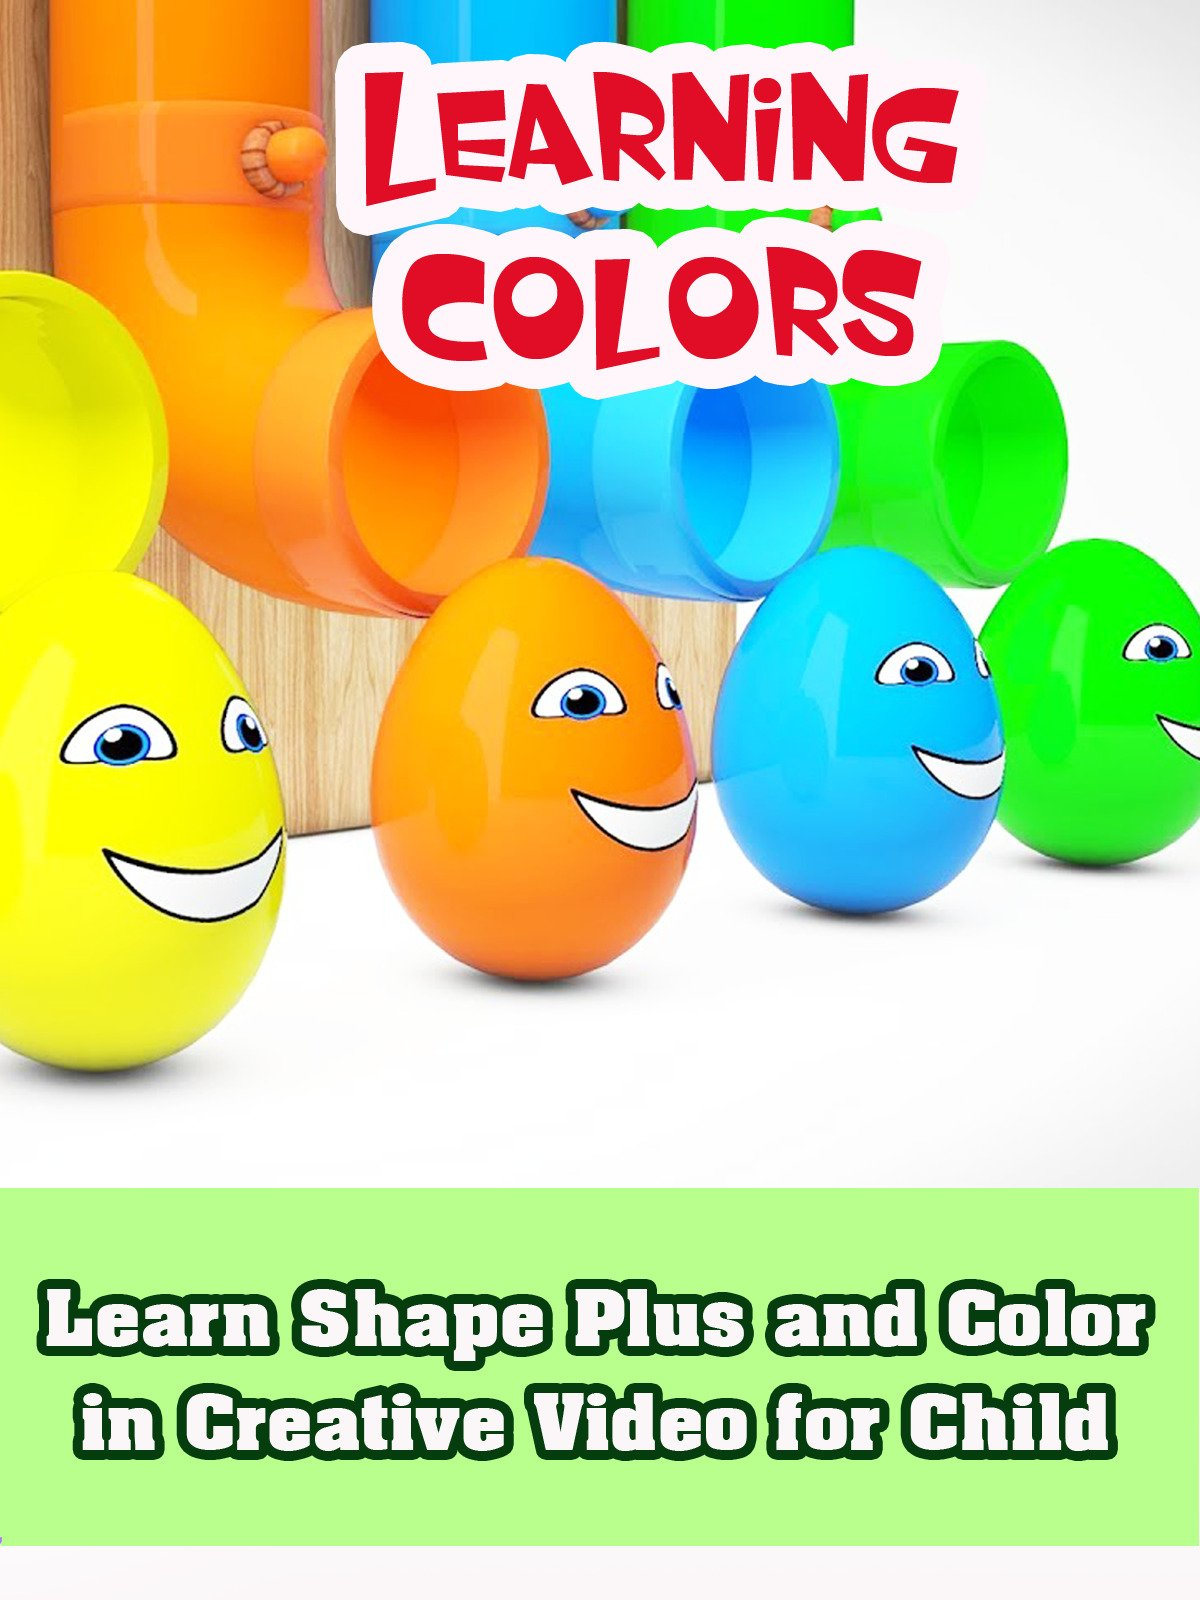 Learn Shape Plus and Color in Creative Video for Child